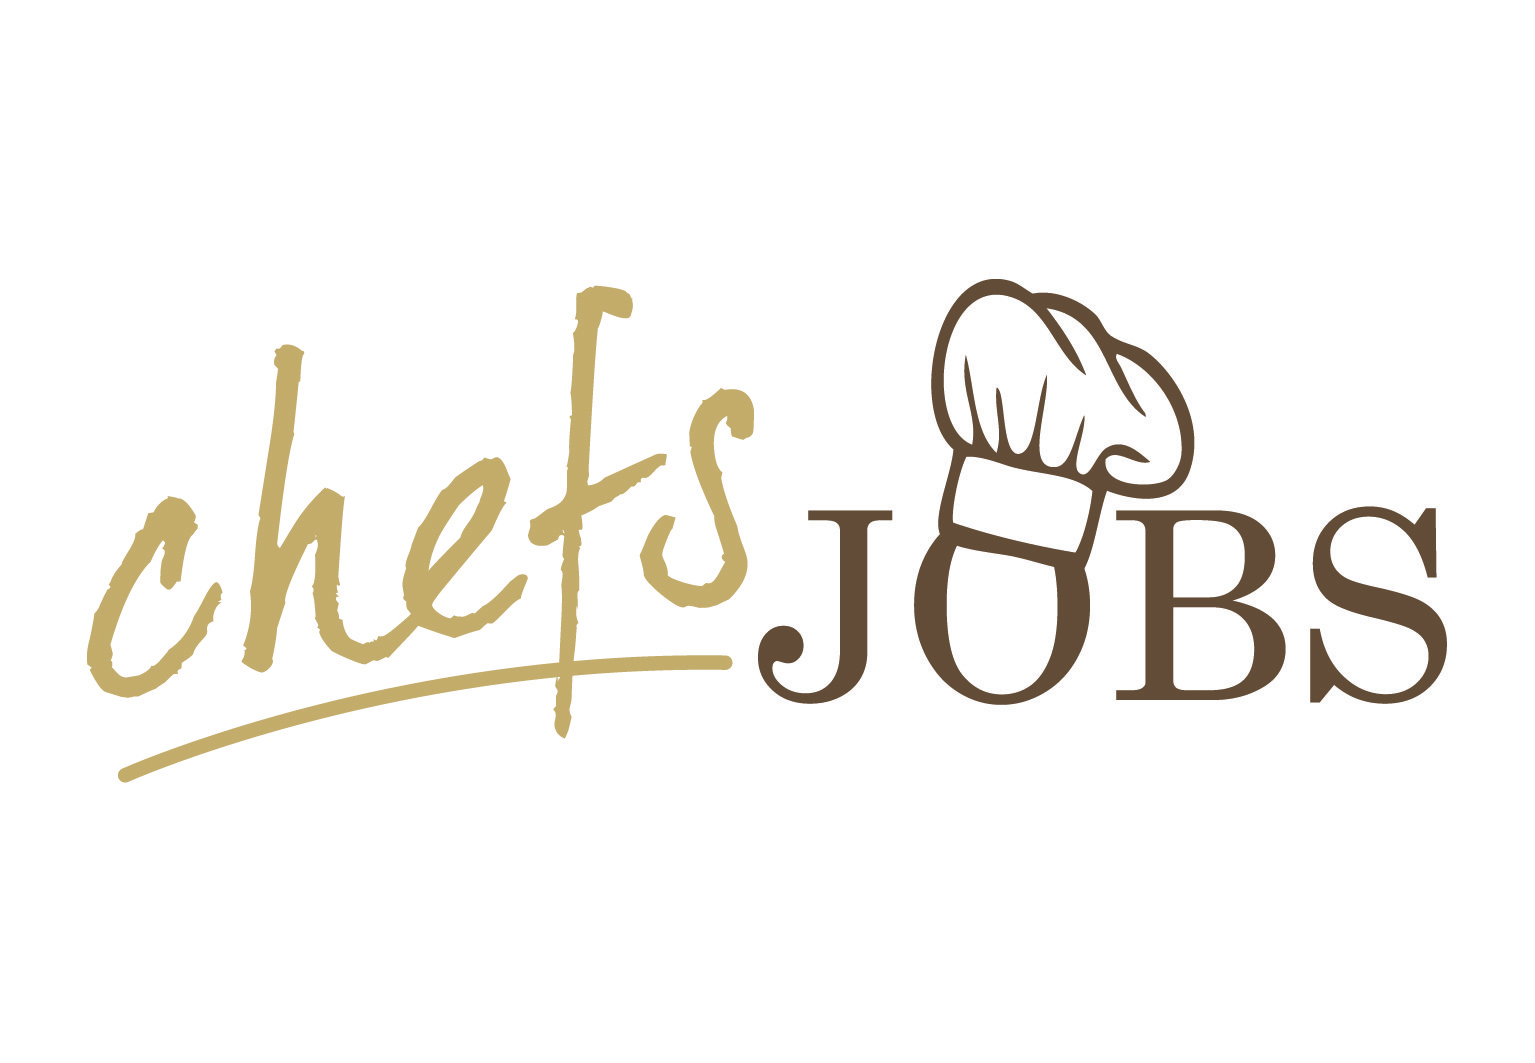 247 jobsite profiles our network of specialist job sites include chefsjobs co uk careersincatering co uk and hotel jobs co uk they have a combined monthly reach of 134 000